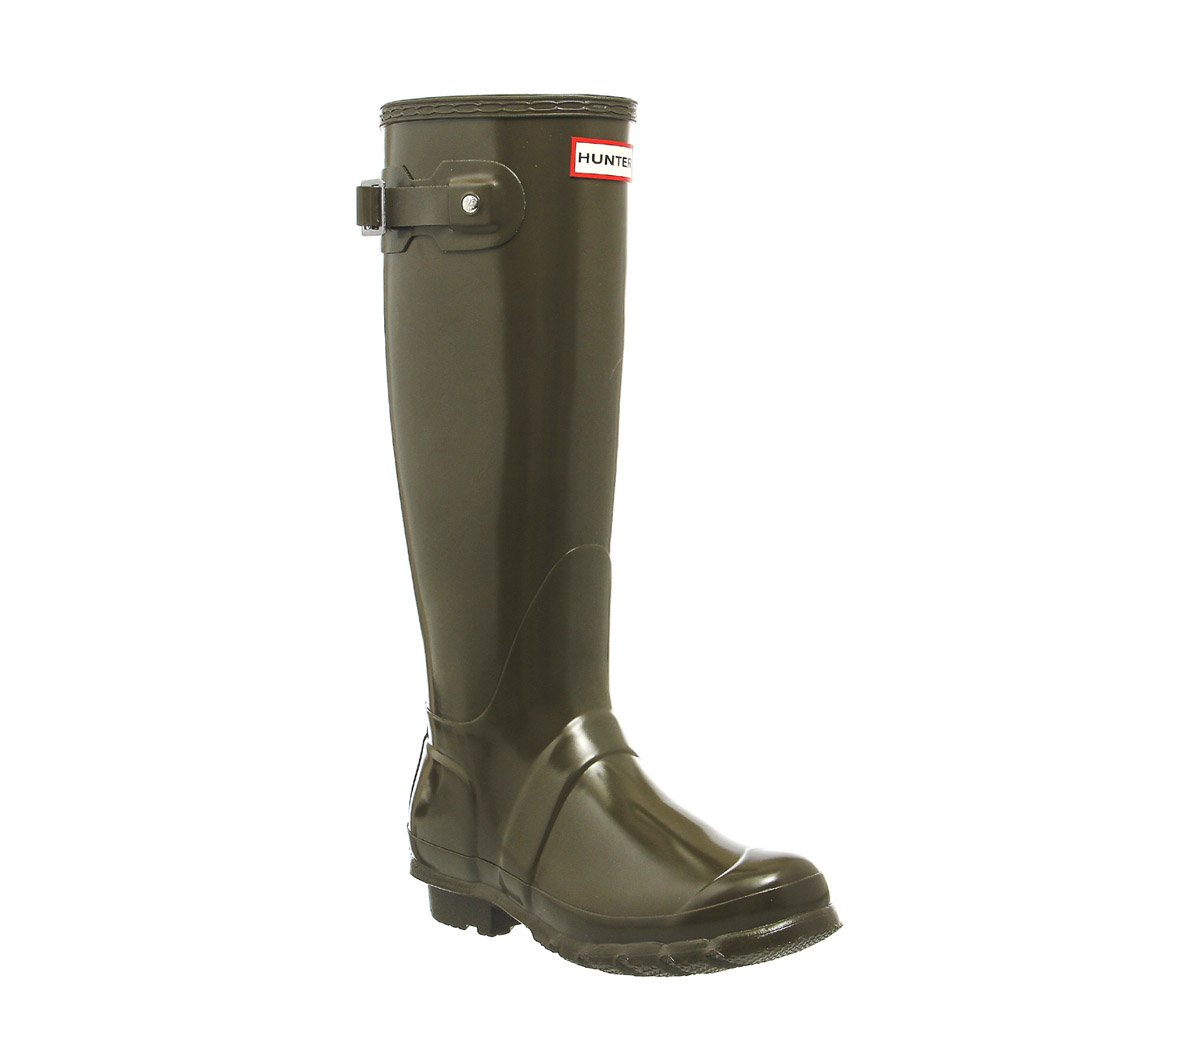 Hunter Women's Original Tall Rain Boot B00SOALRIW 9 B(M) US|Swamp Green